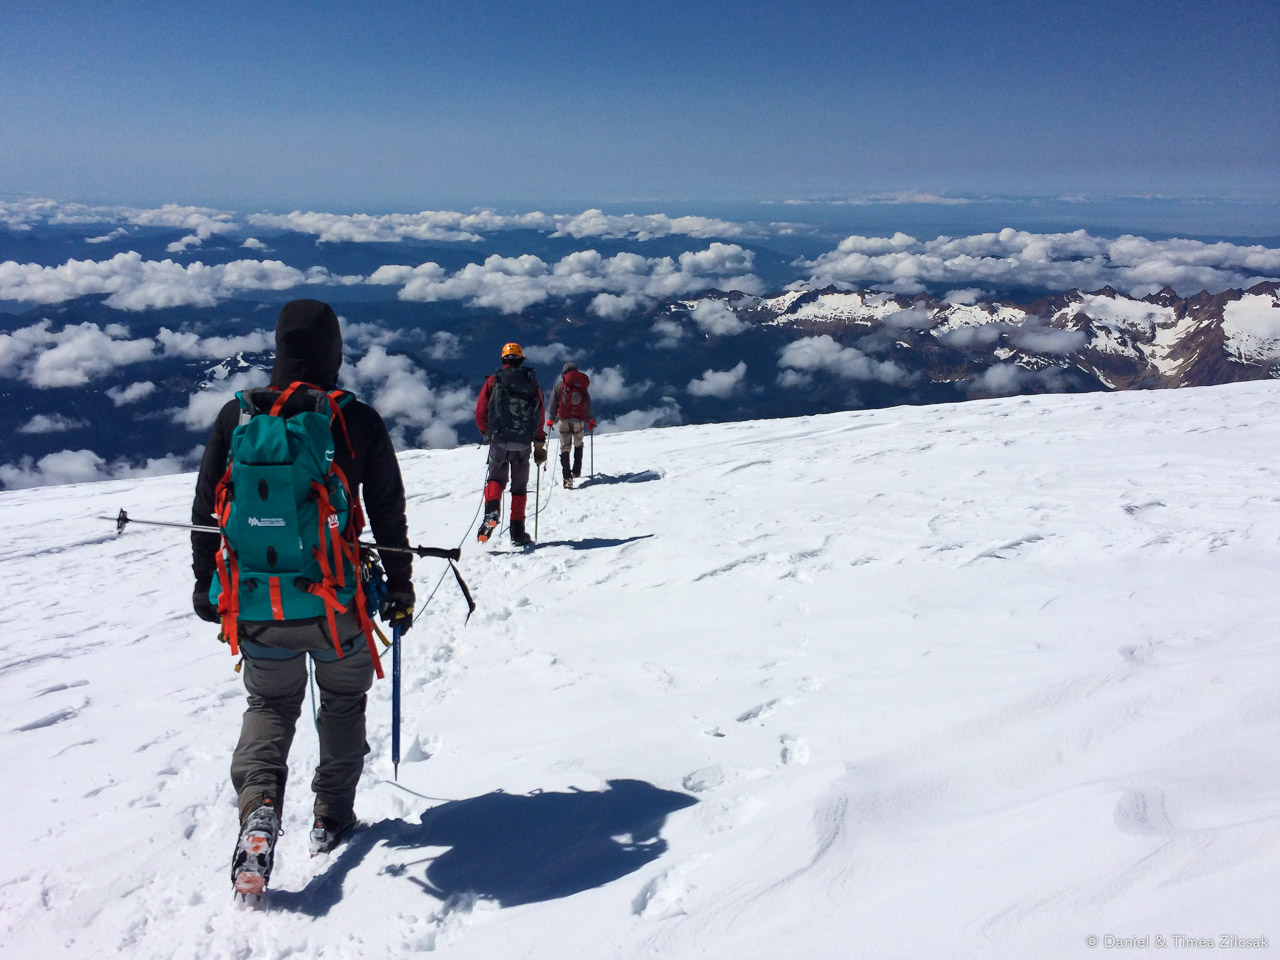 Team heading down the mountain - on the Baker summit plateau